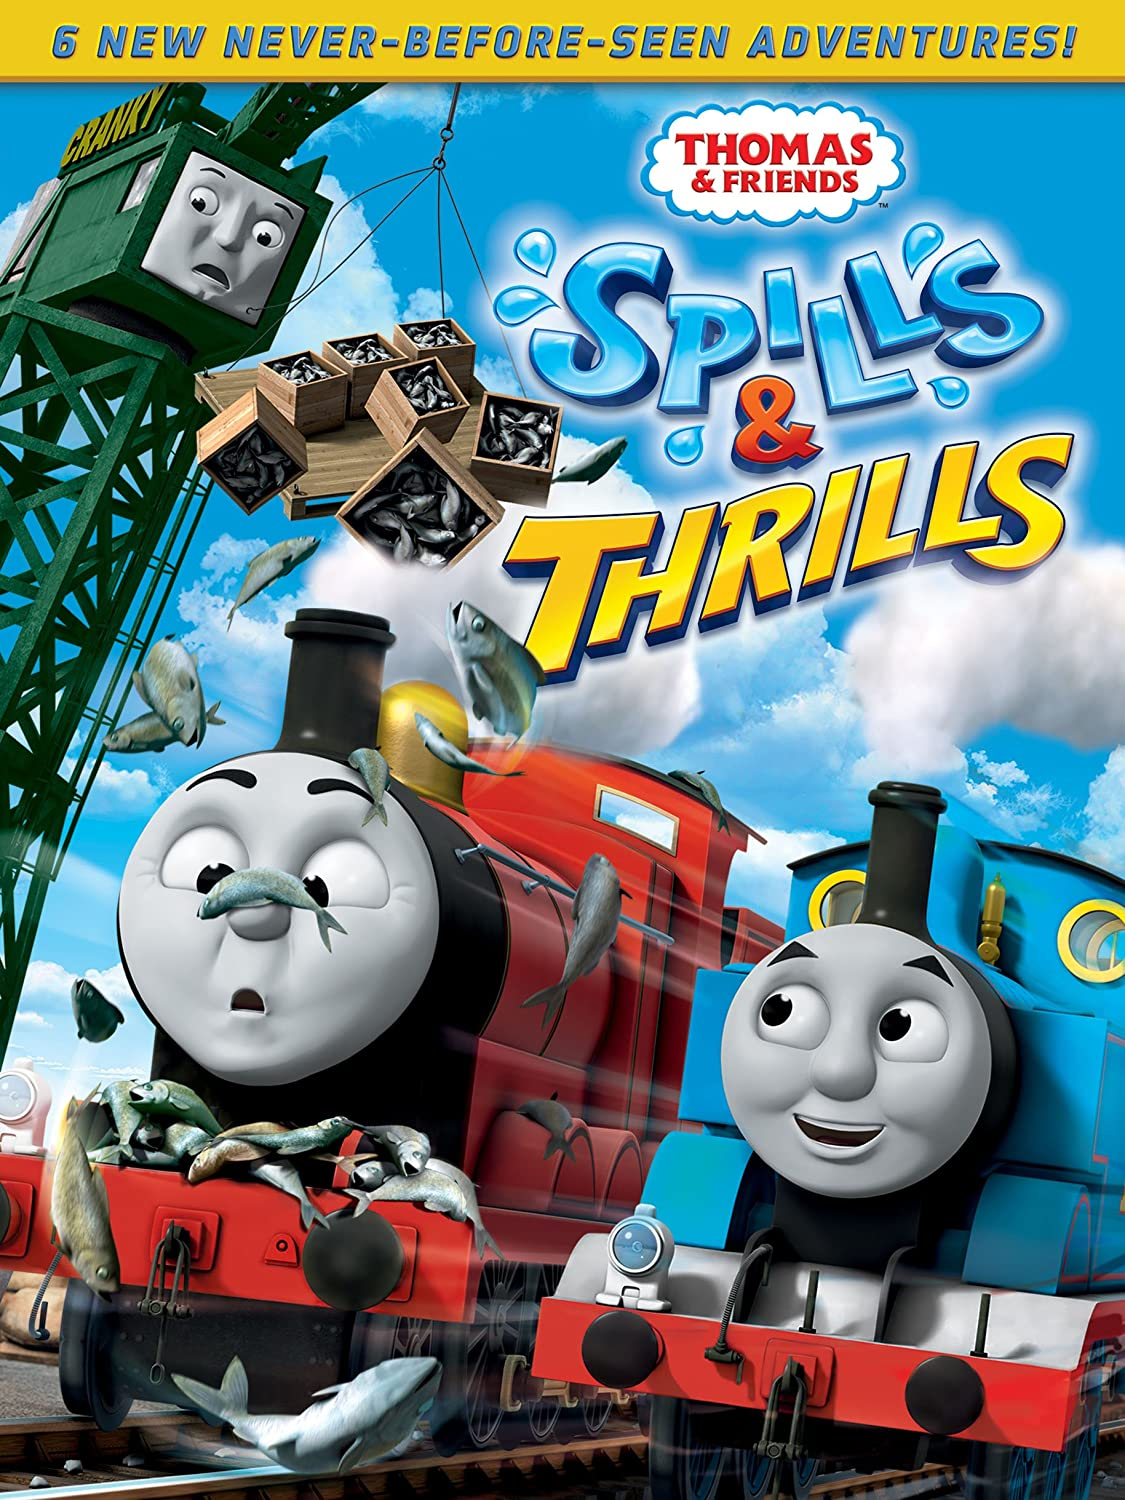 http://www.amazon.com/Thomas-Friends-Spills-Thrills/dp/B00HHYF5CU/